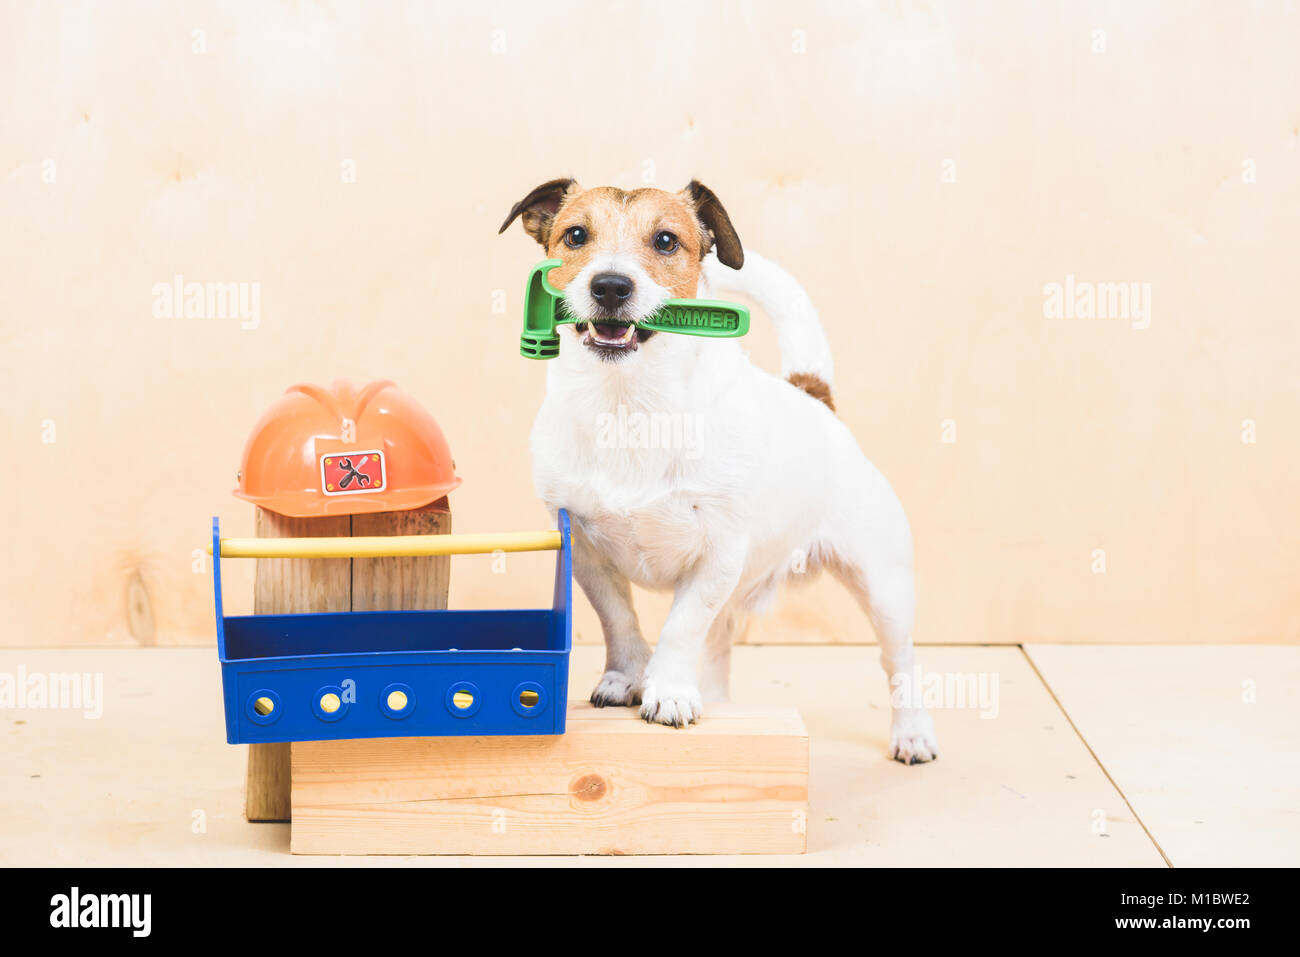 Do it yourself diy concept with funny dog as builders assistant do it yourself diy concept with funny dog as builders assistant solutioingenieria Choice Image